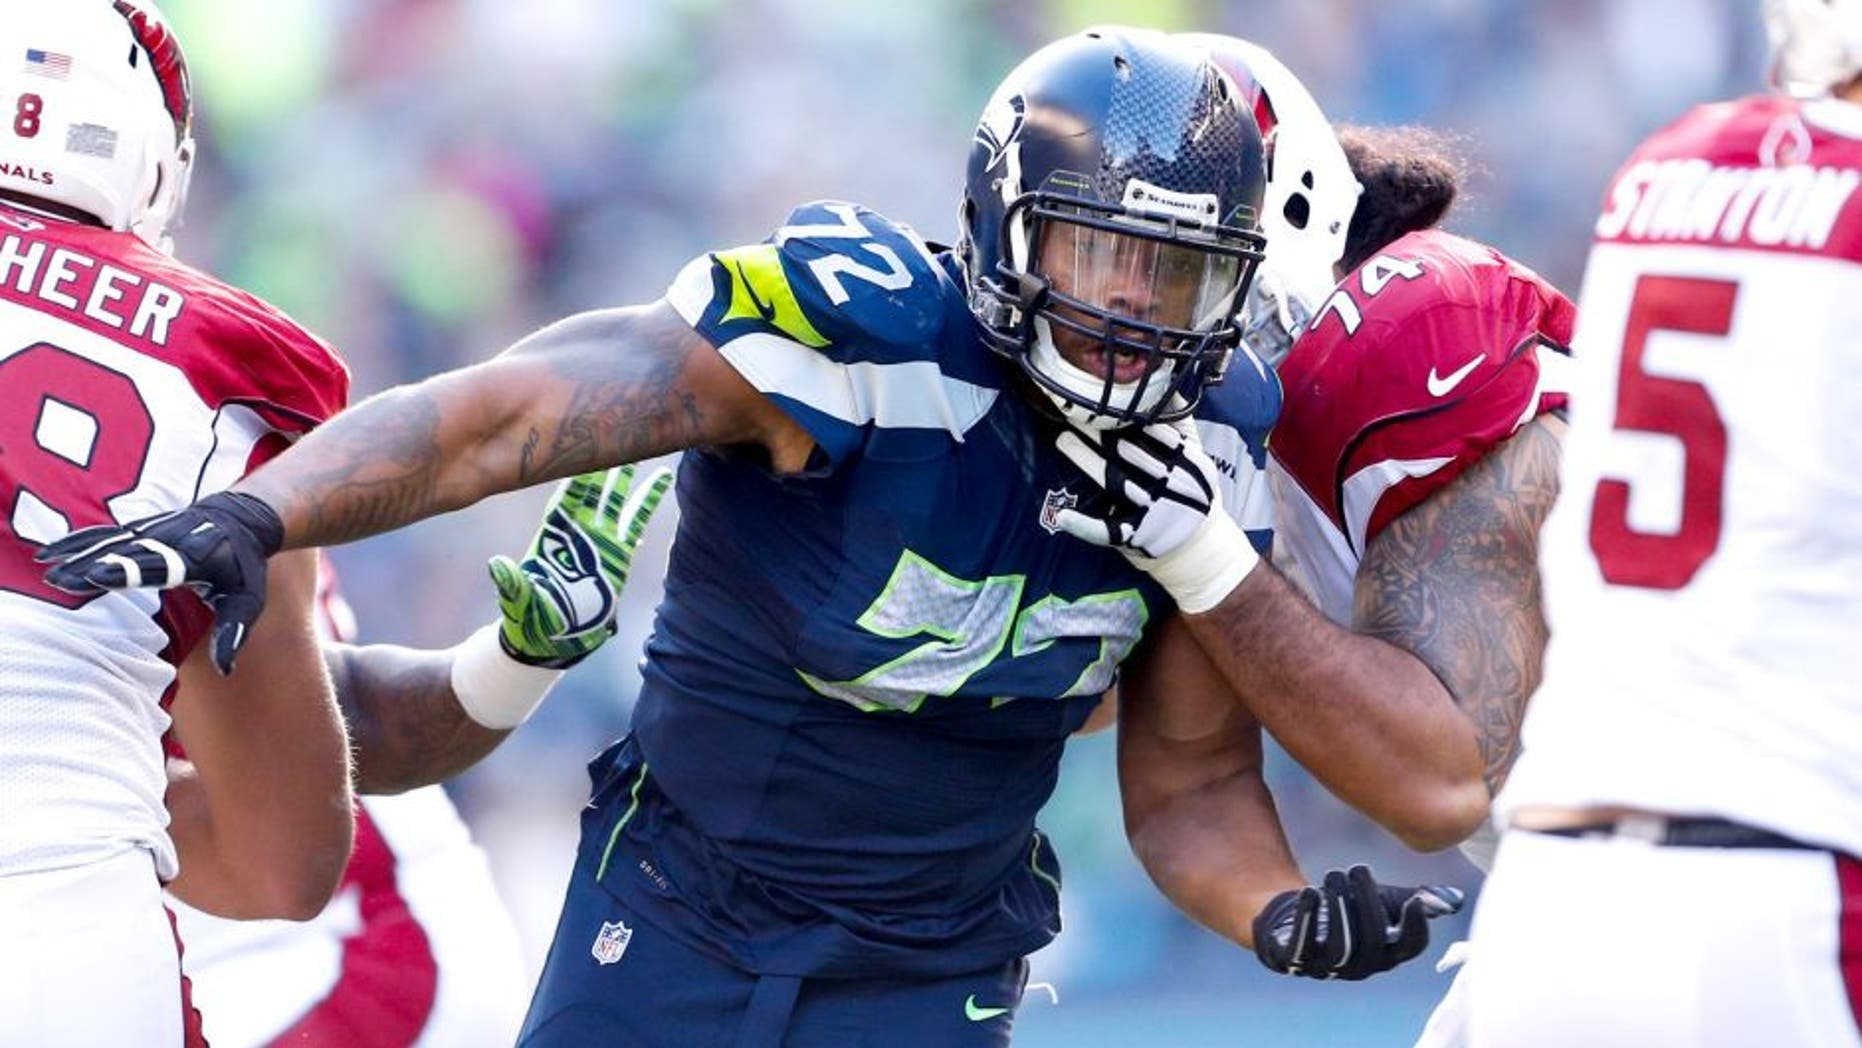 Nov 23, 2014; Seattle, WA, USA; Seattle Seahawks defensive end Michael Bennett (72) rushes the passer against the Arizona Cardinals during the second quarter at CenturyLink Field. Mandatory Credit: Joe Nicholson-USA TODAY Sports